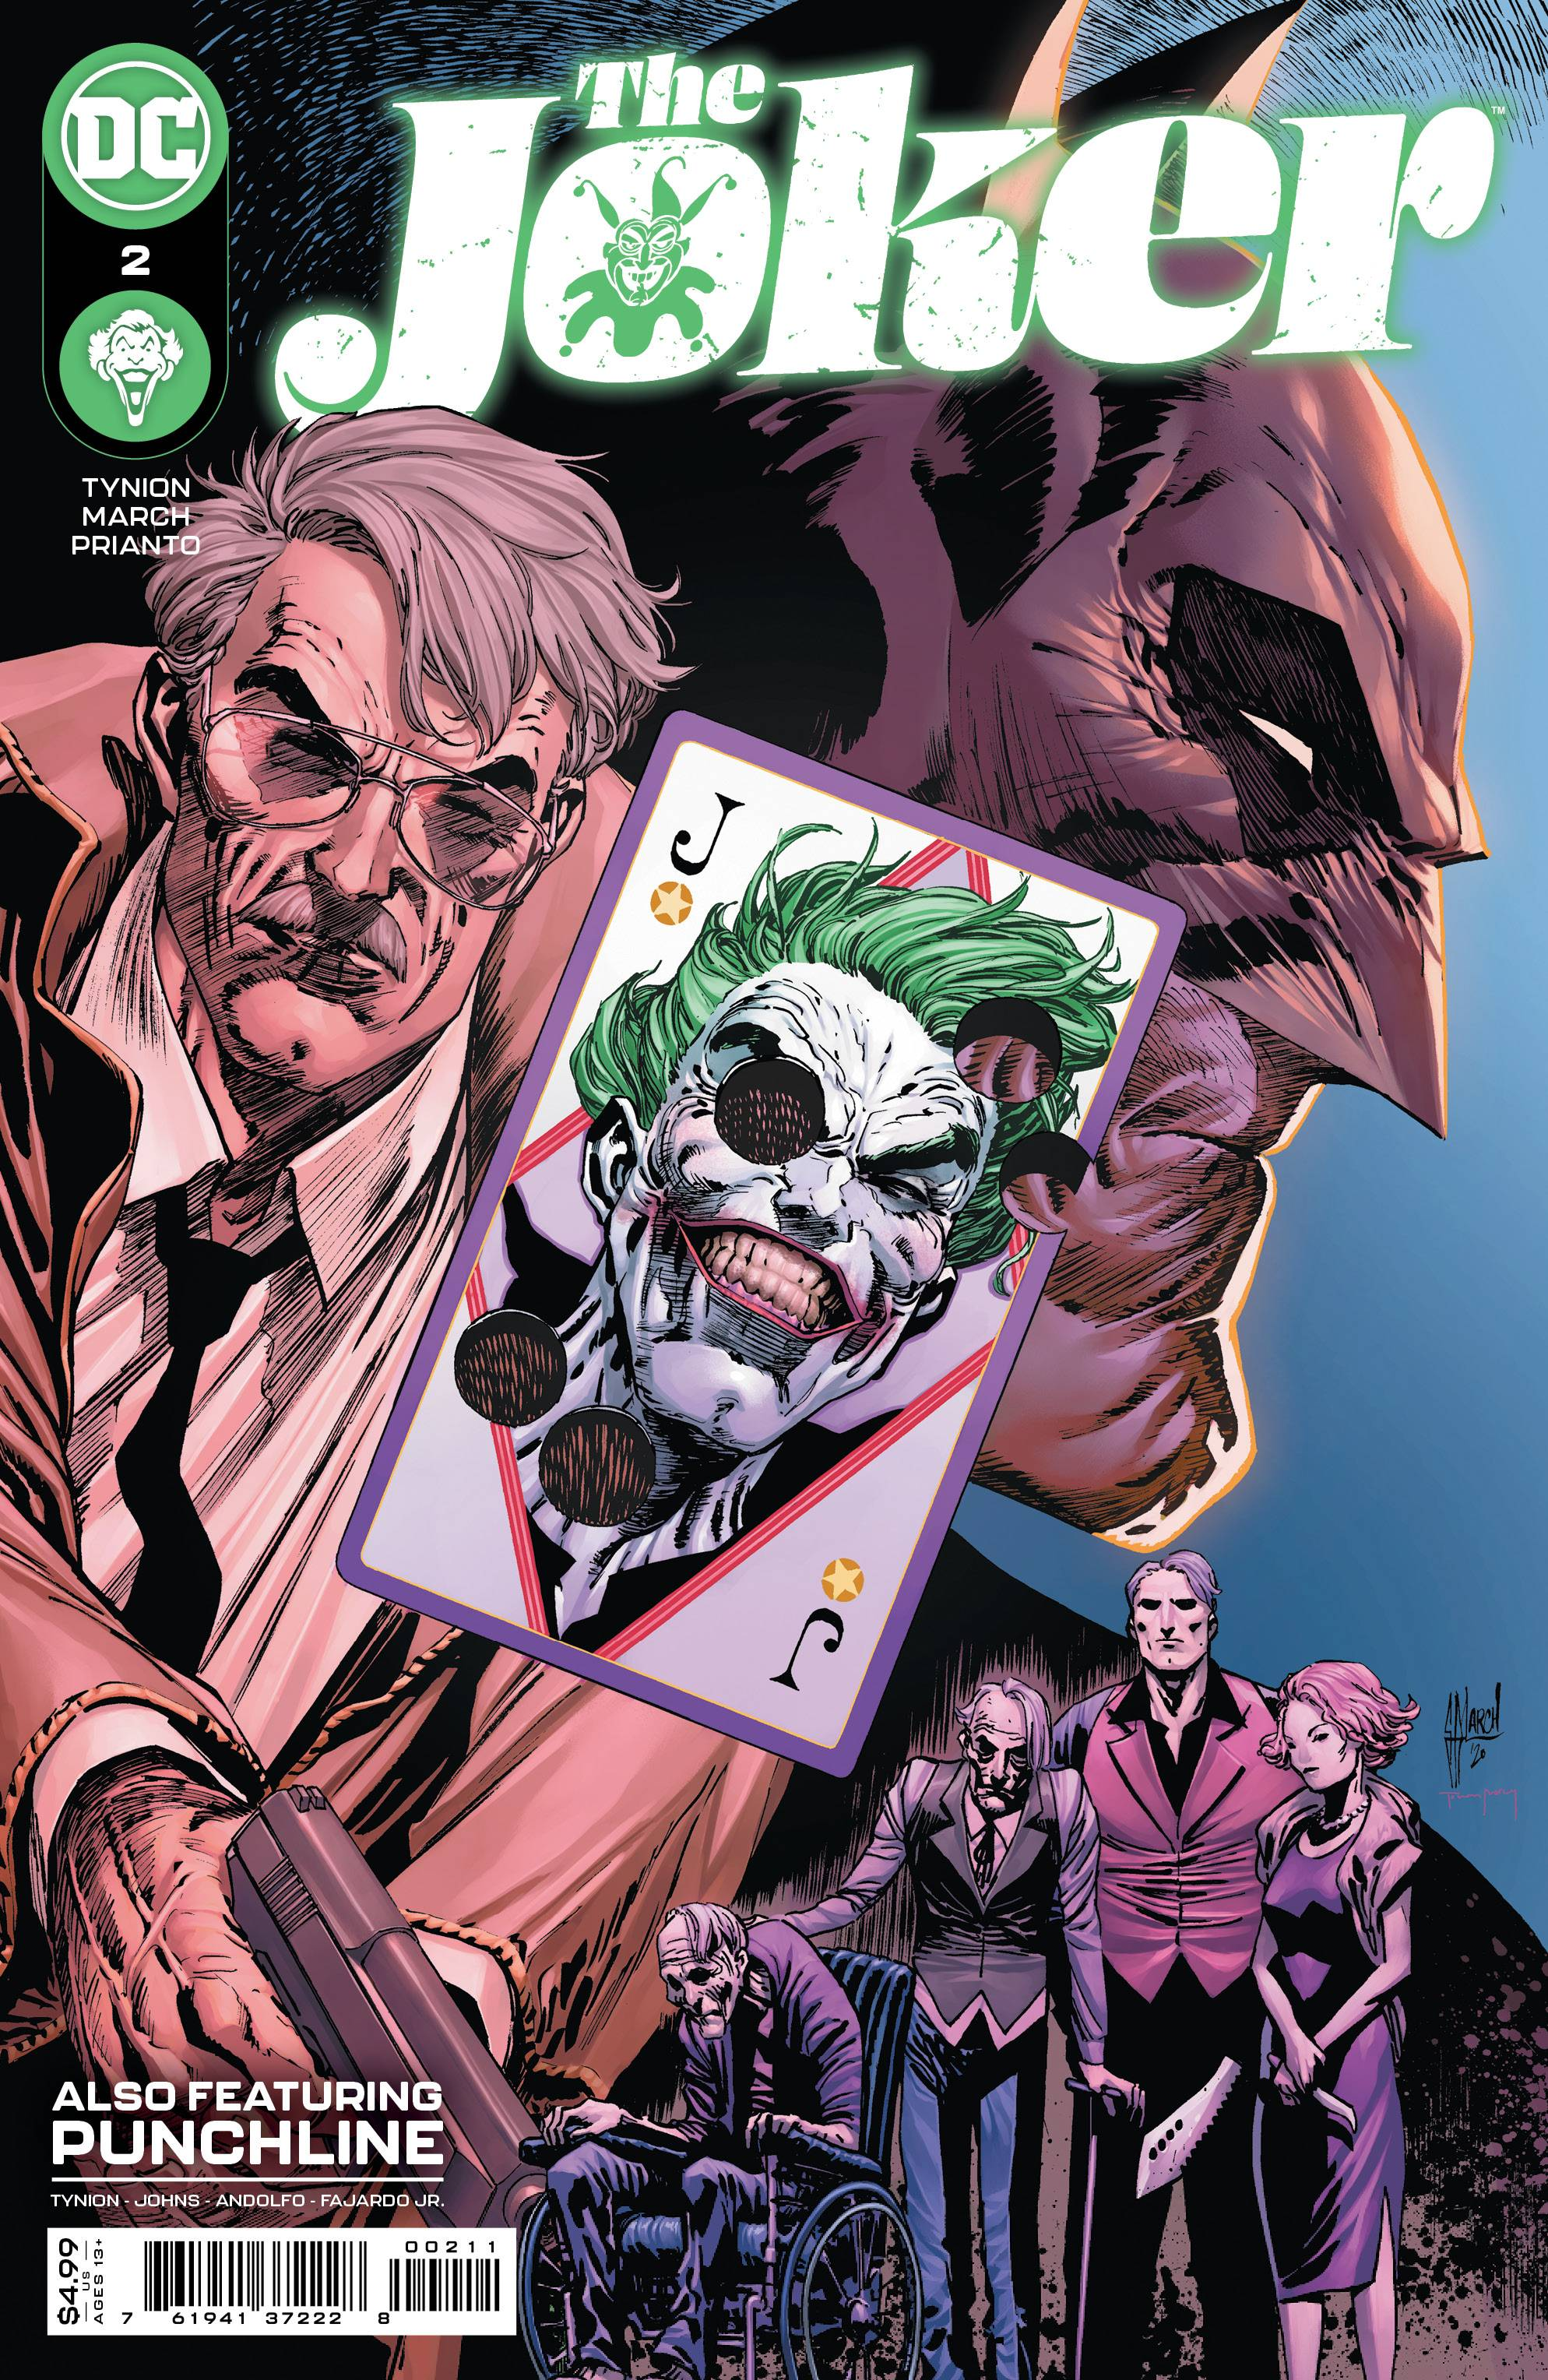 JOKER #2 CVR A MARCH